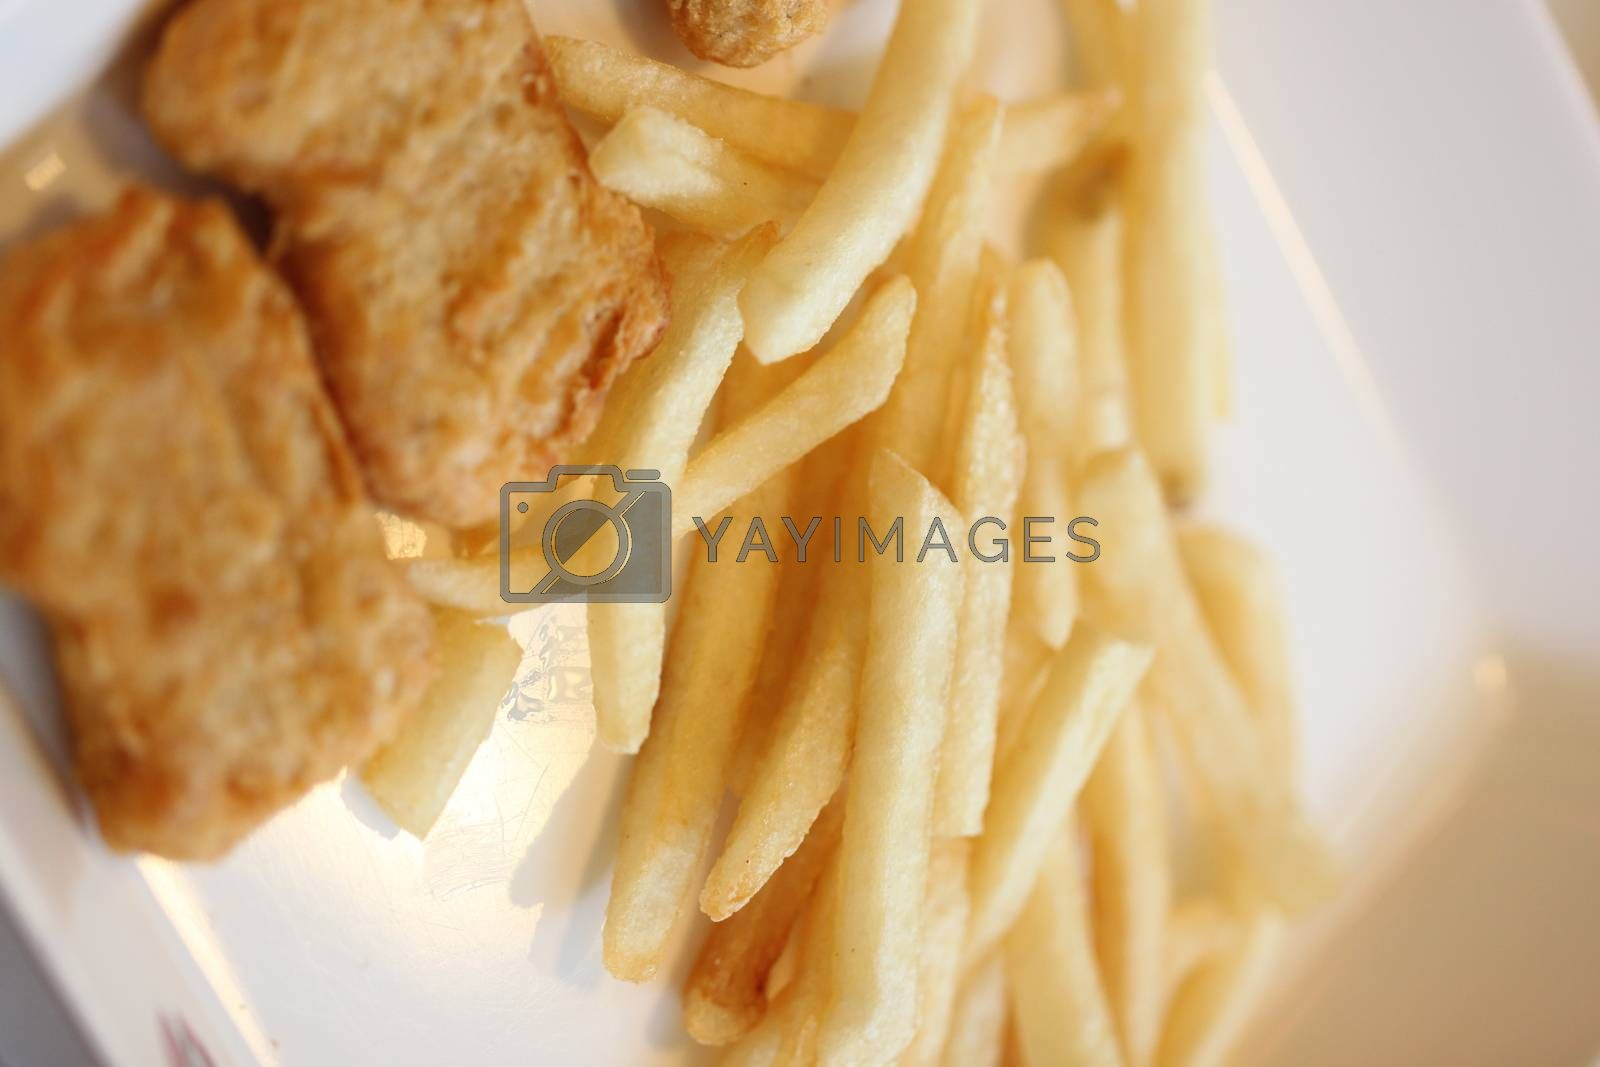 French fries and fried chicken on dish. by PiyaPhoto